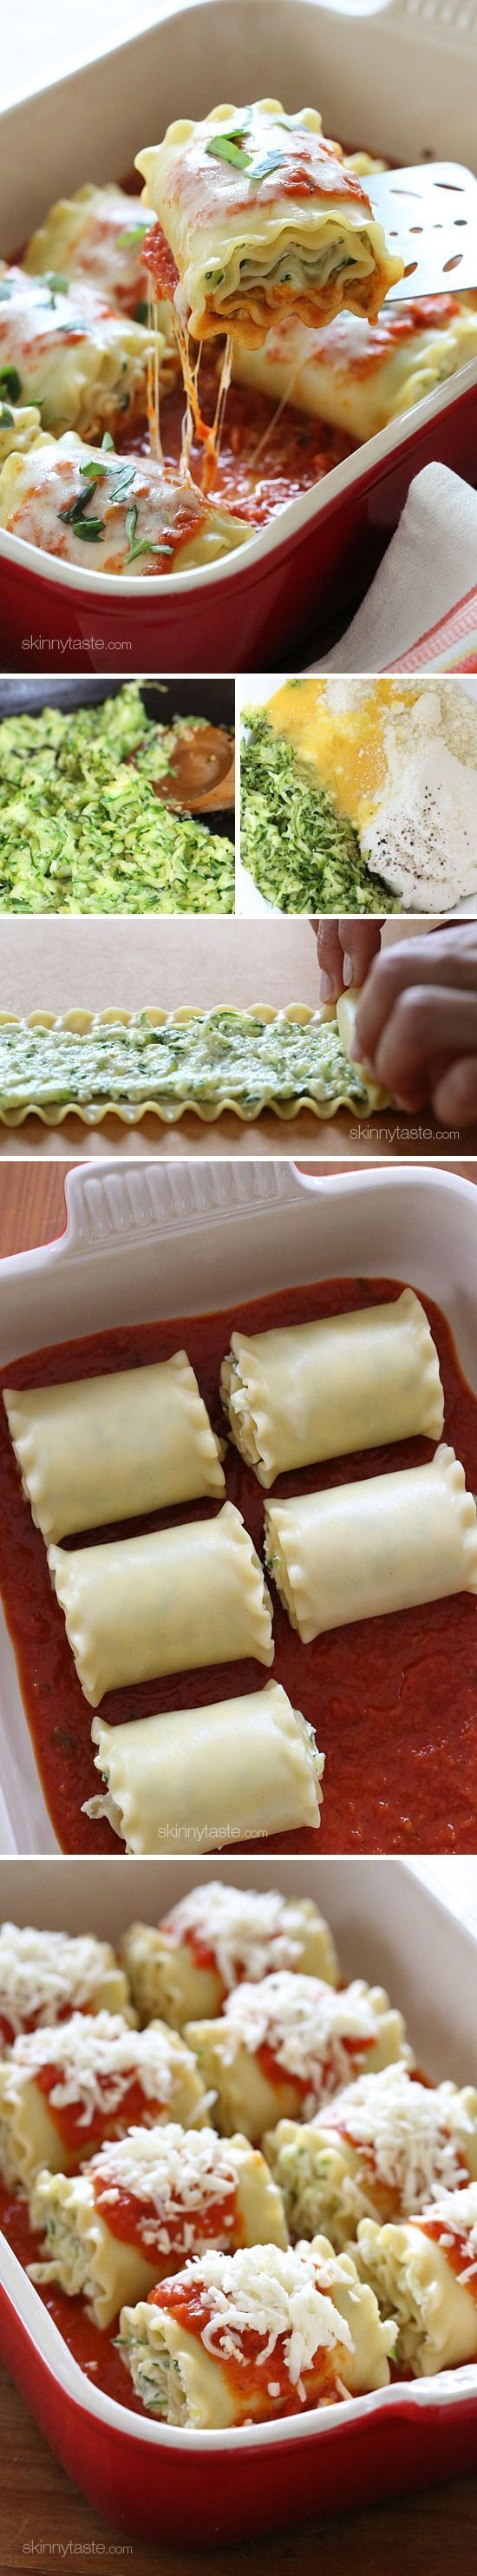 These 3-Cheese Zucchini Stuffed Lasagna Rolls are kid-friendly, freezer-friendly, and delicious!